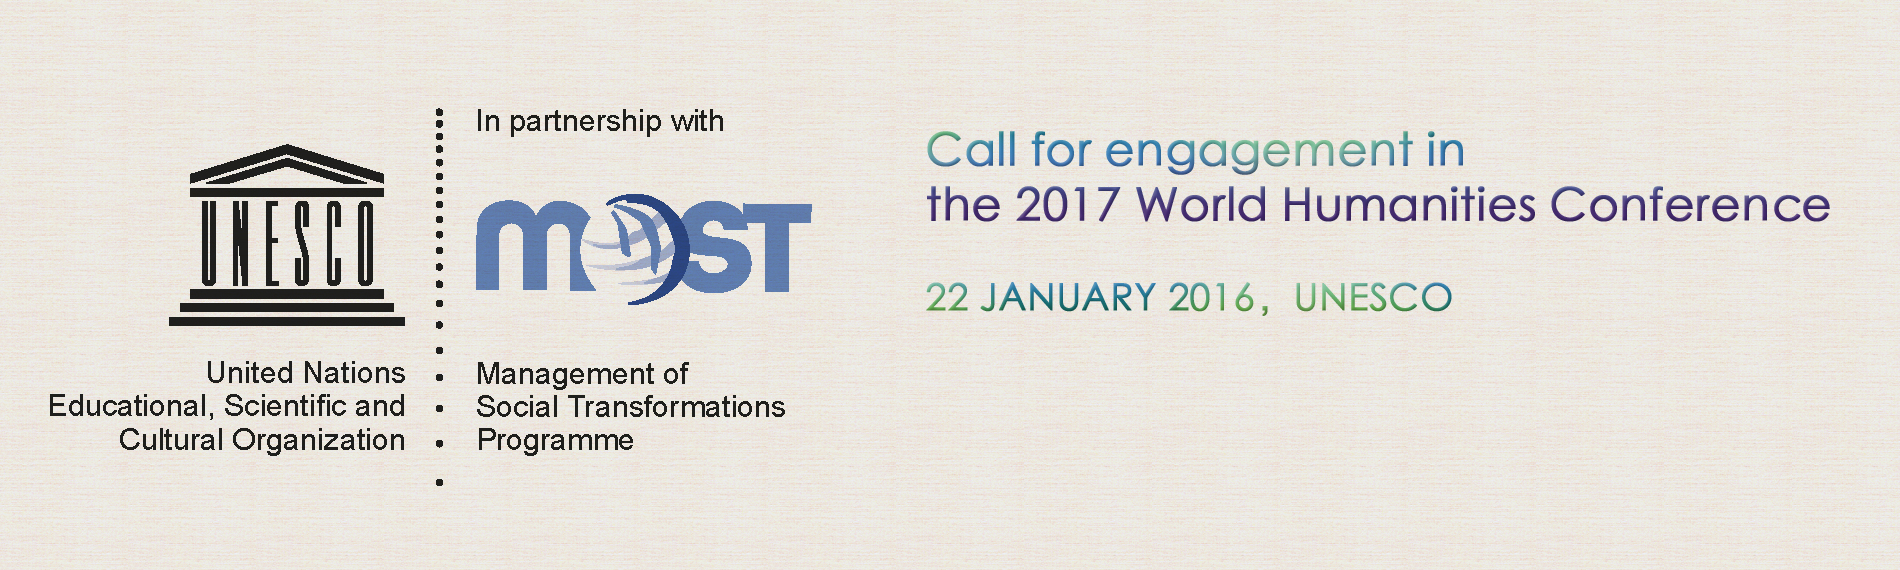 Call for Engagement in the 2017 World Humanities Conference 22 JANUARY 2016,UNESCO  http://www.cipsh.net/web/news-109.htm